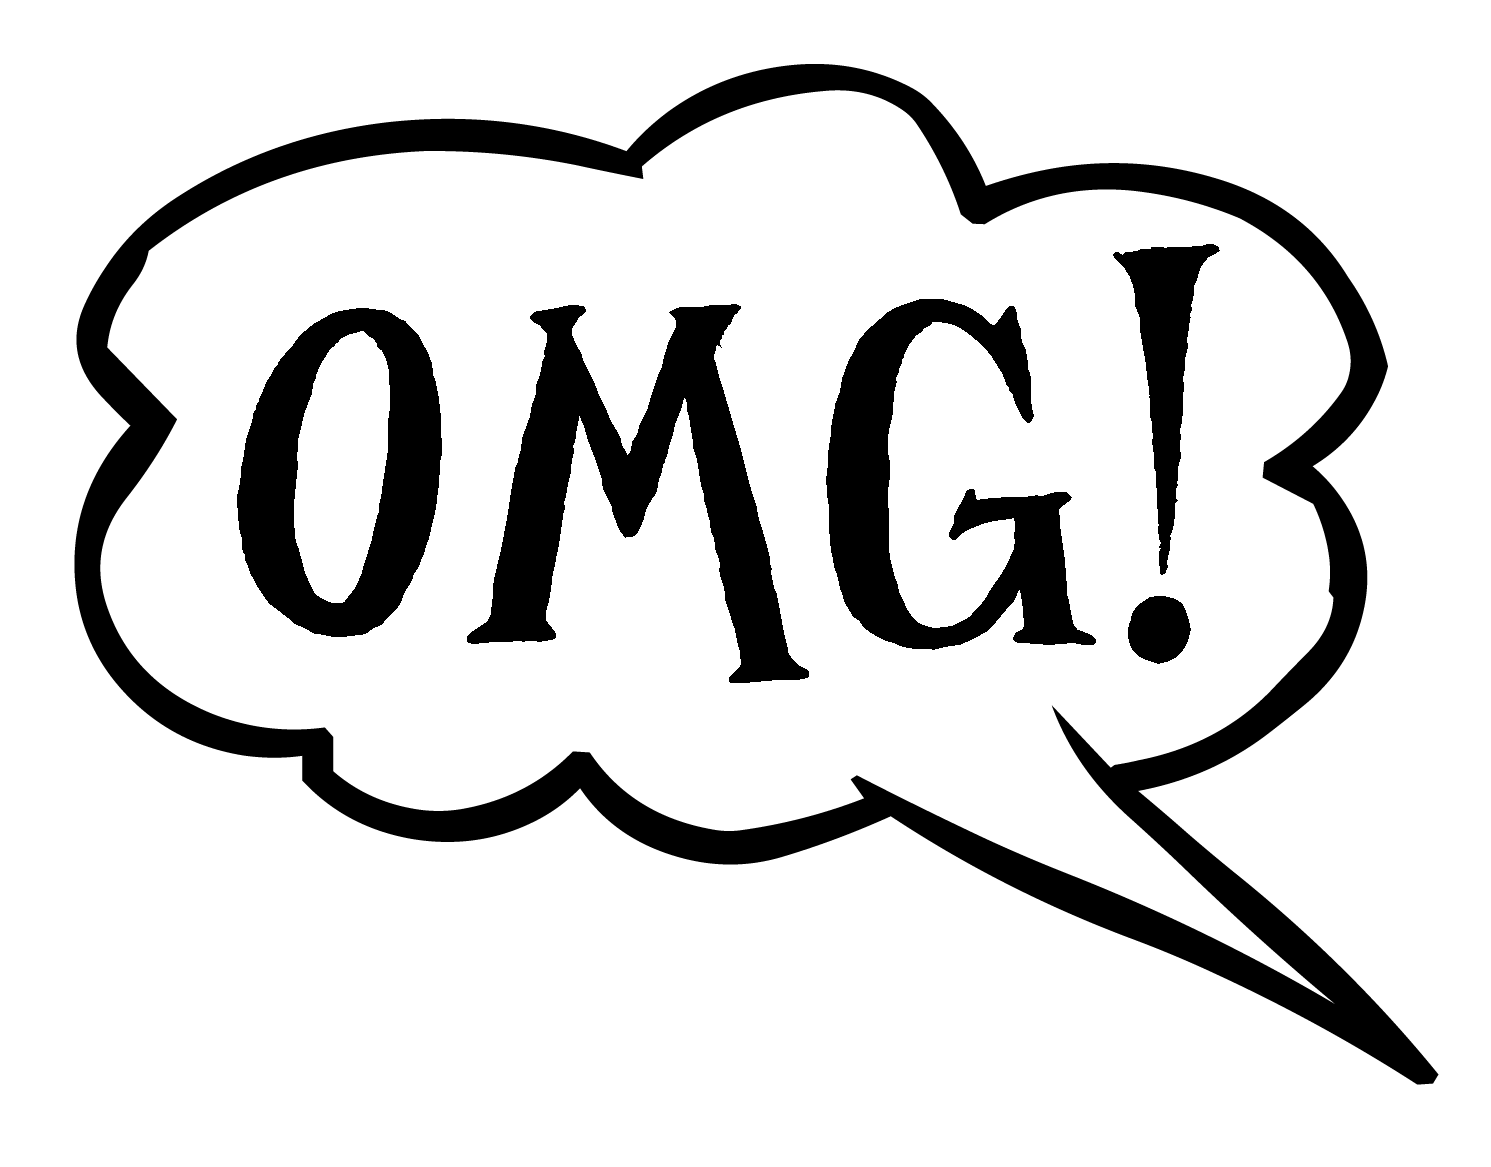 Oops clipart. Free speech bubble with